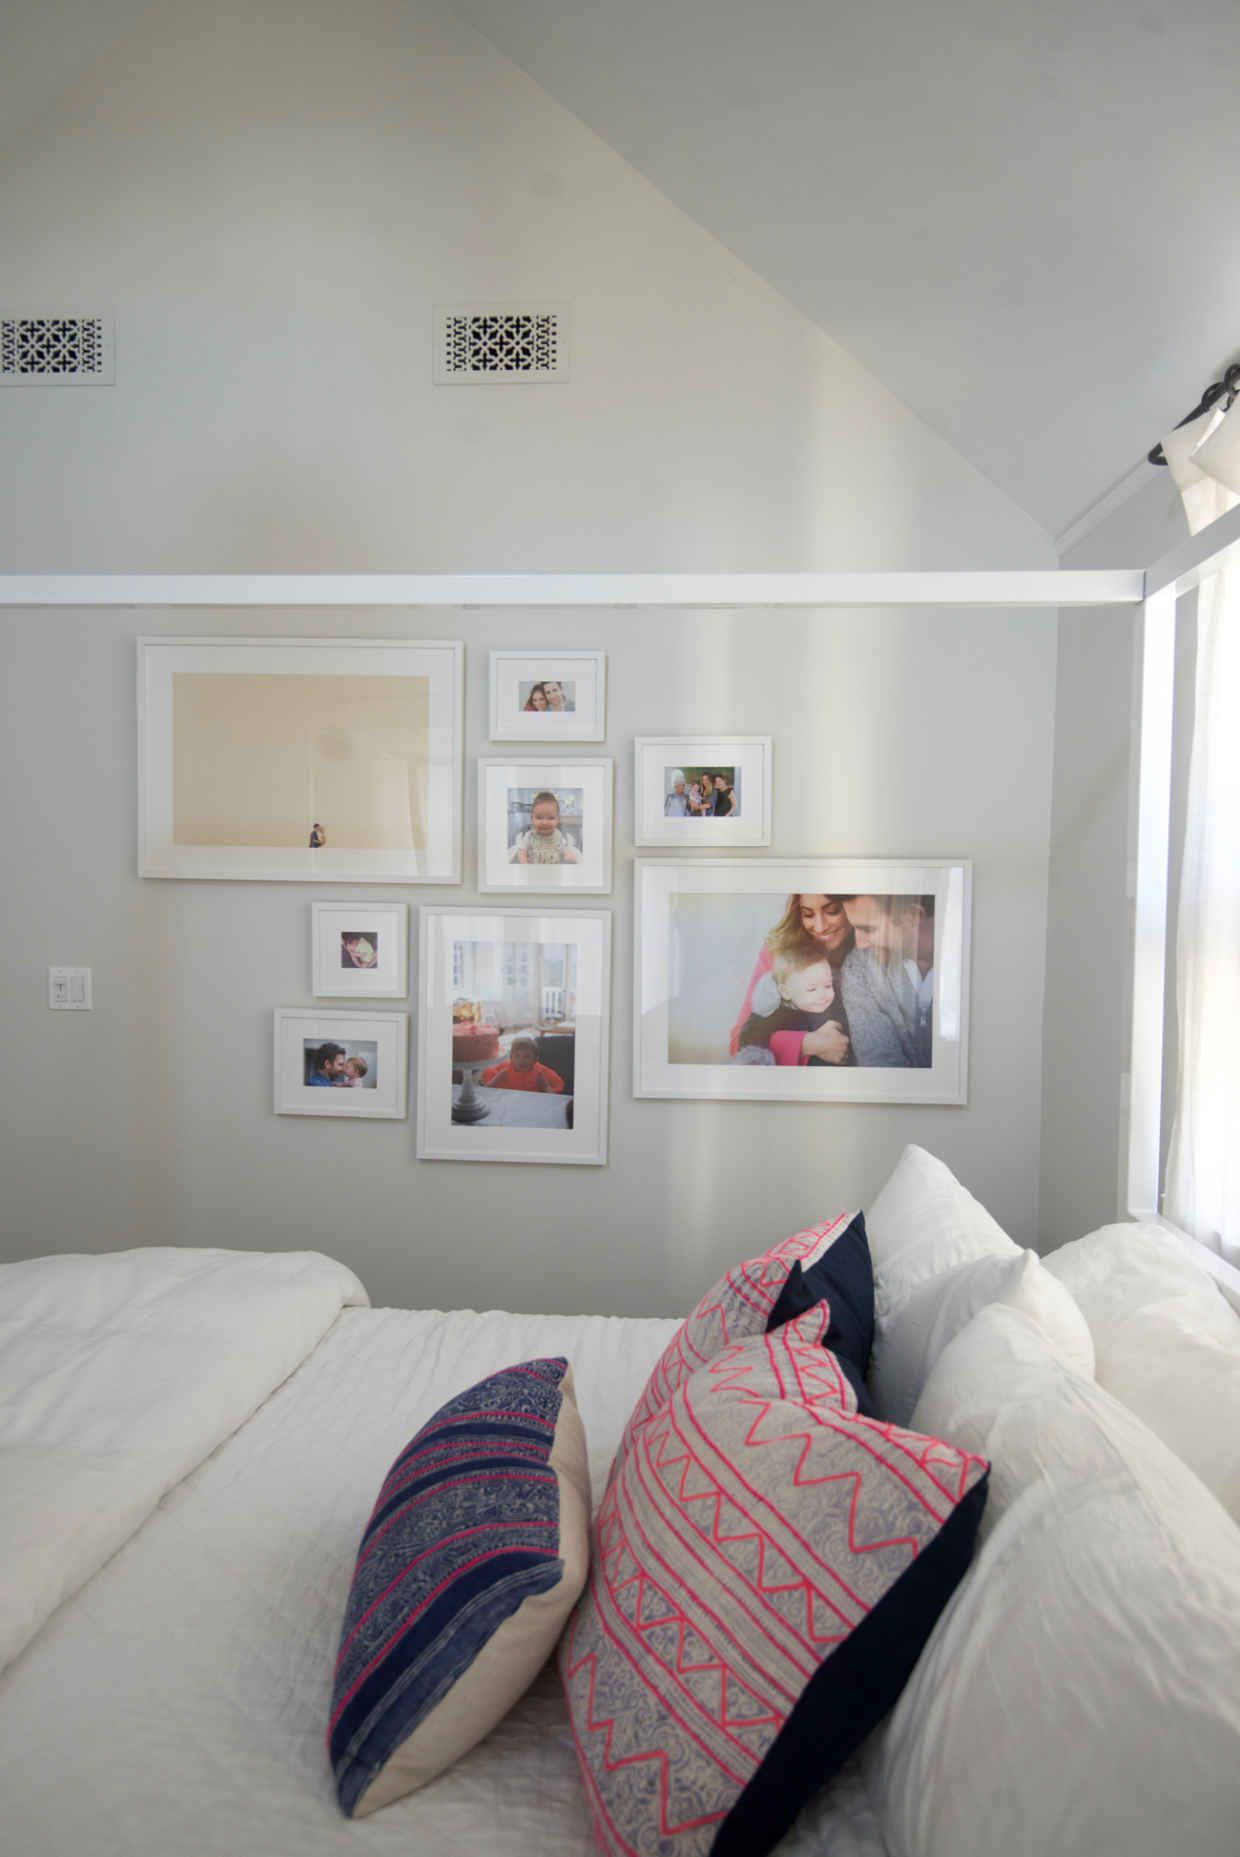 Master bedroom gallery wall  Personal Gallery Wall  Home sweet home  Pinterest  Gallery wall